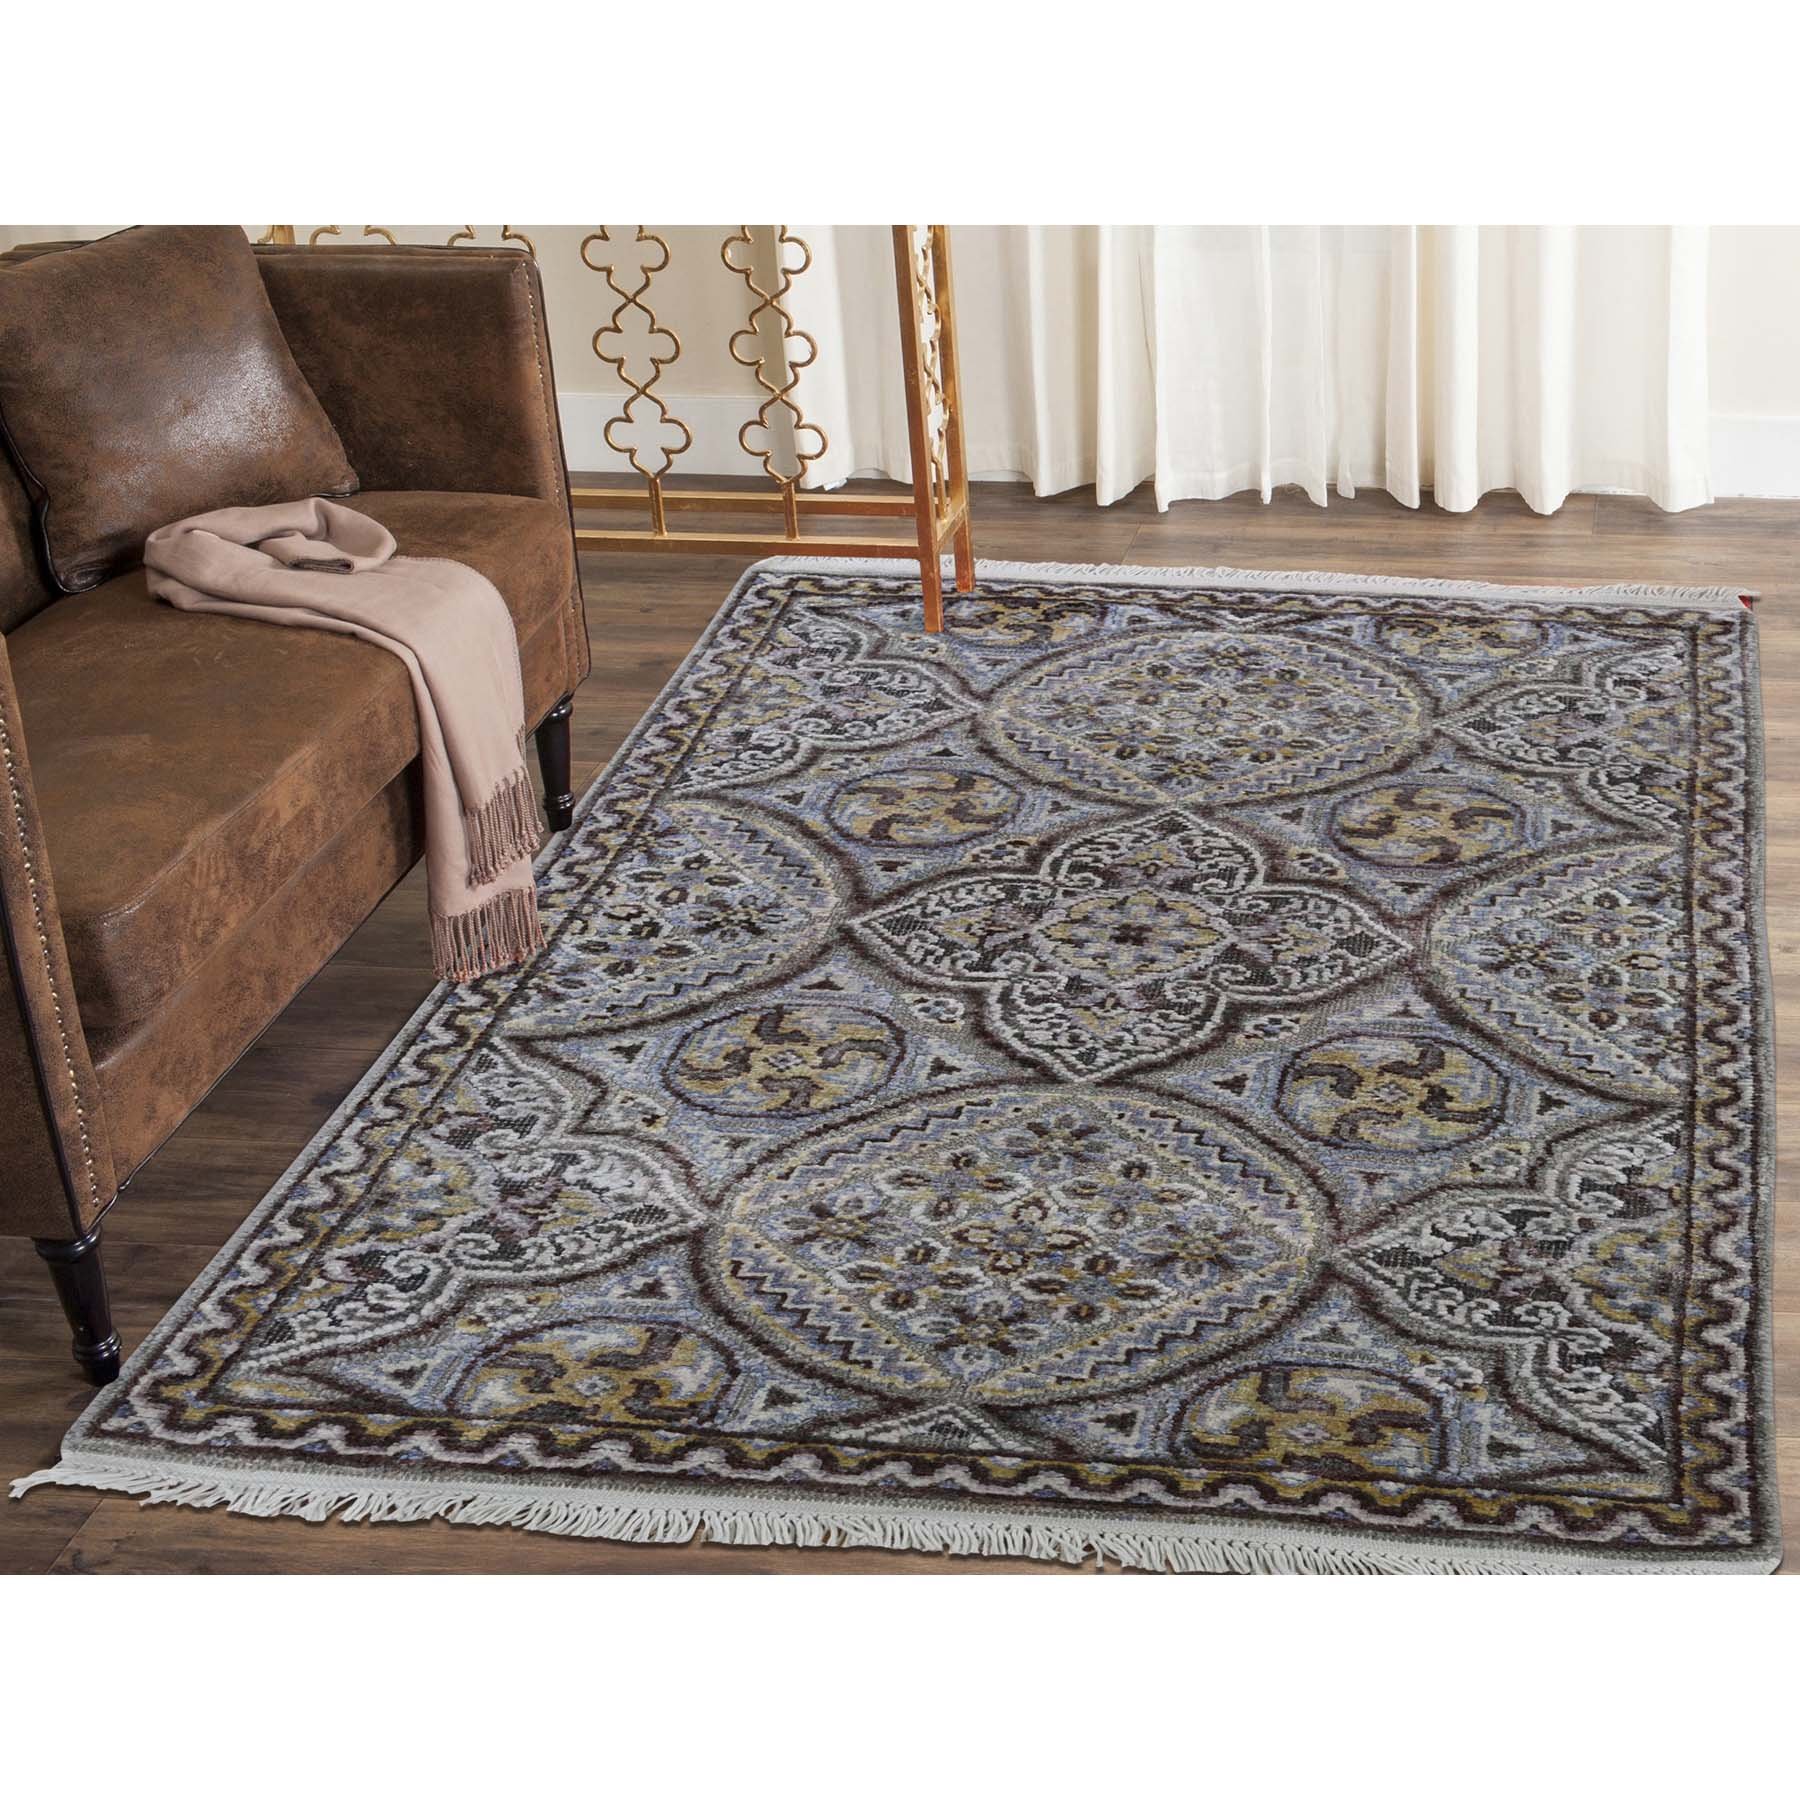 2-1 x3-1  Mughal Inspired Medallions Oxidized Wool and Silk Hand-Knotted Oriental Rug